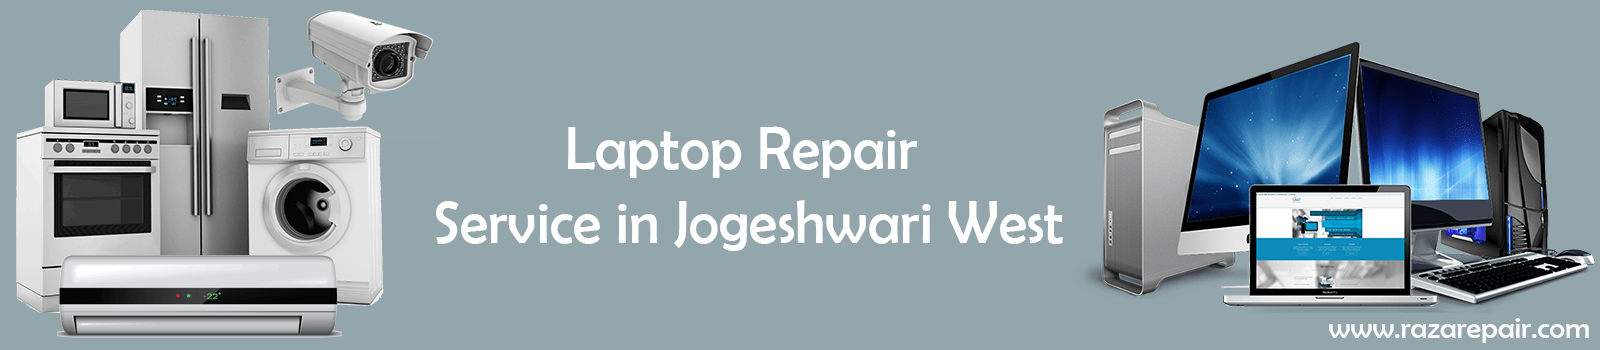 Laptop Repair Service in Jogeshwari West | Call Now 8655112626